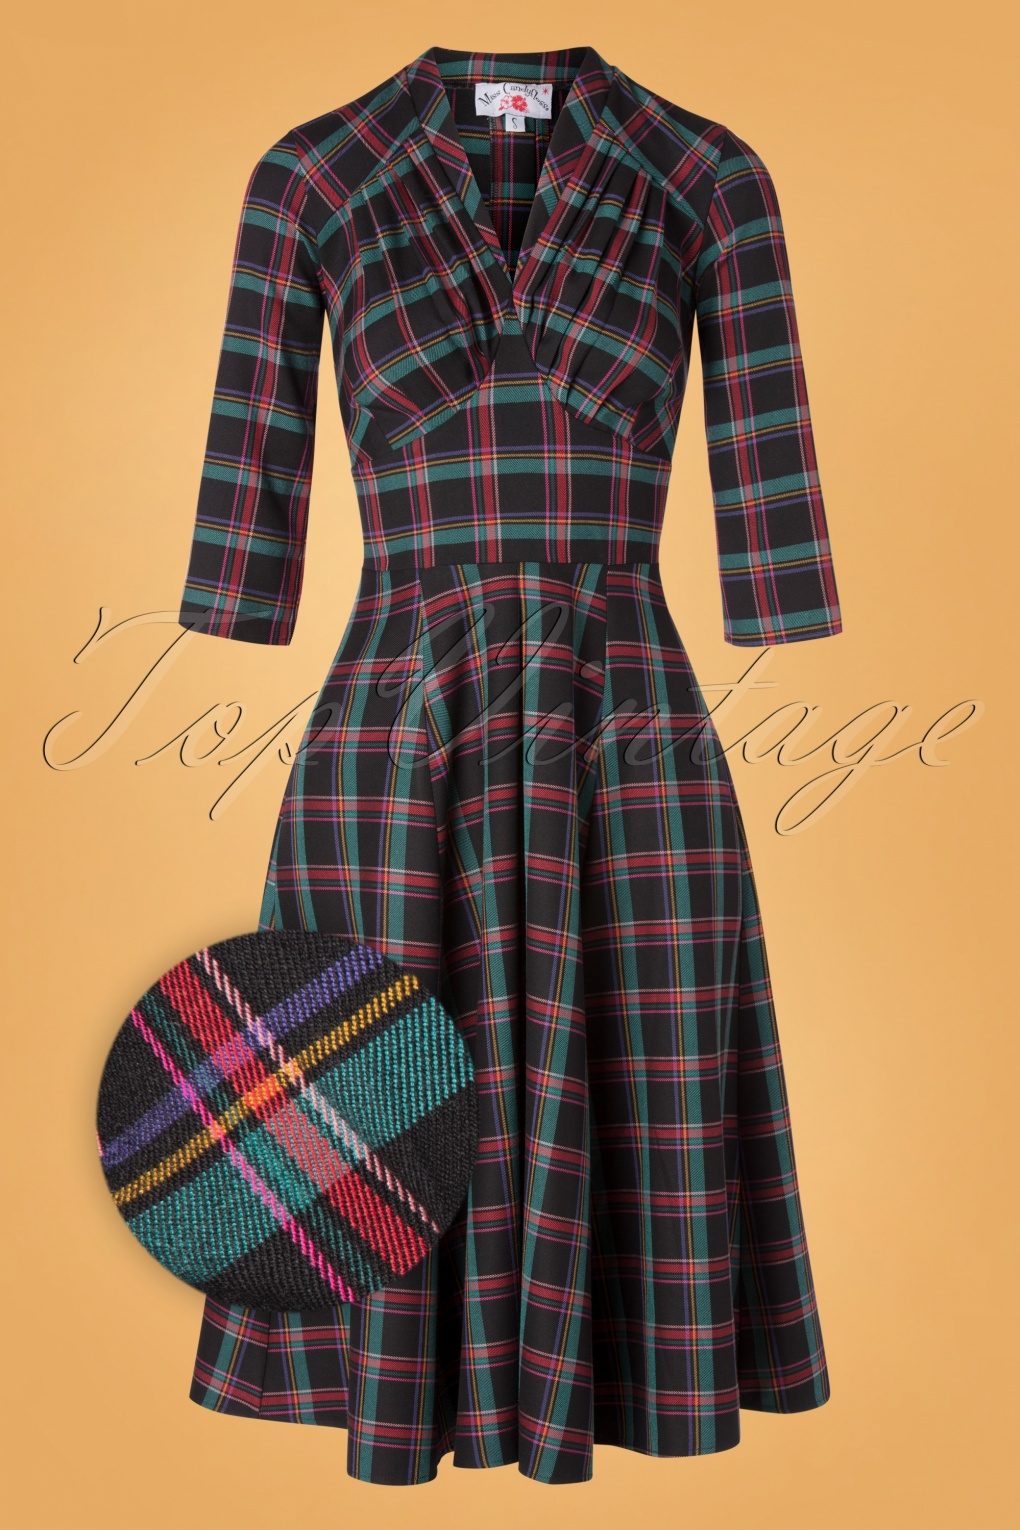 50s Dresses UK | 1950s Dresses, Shoes & Clothing Shops 50s Vedette Lou Tartan Swing Dress in Black £89.43 AT vintagedancer.com